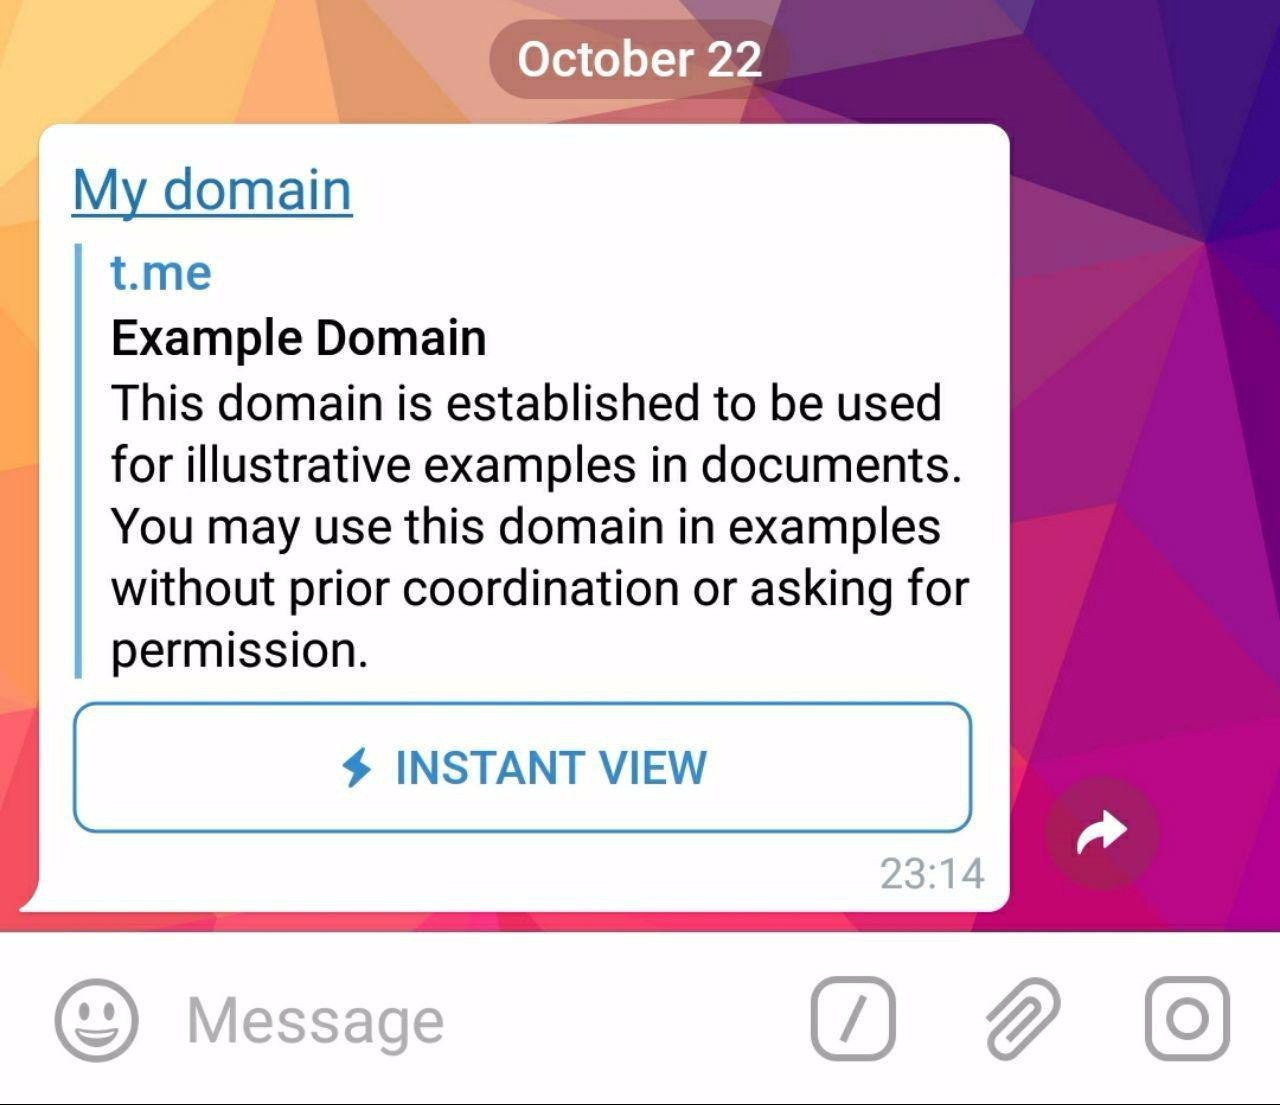 What Is Instant View And How can I get It for My domain? in Telegram ...